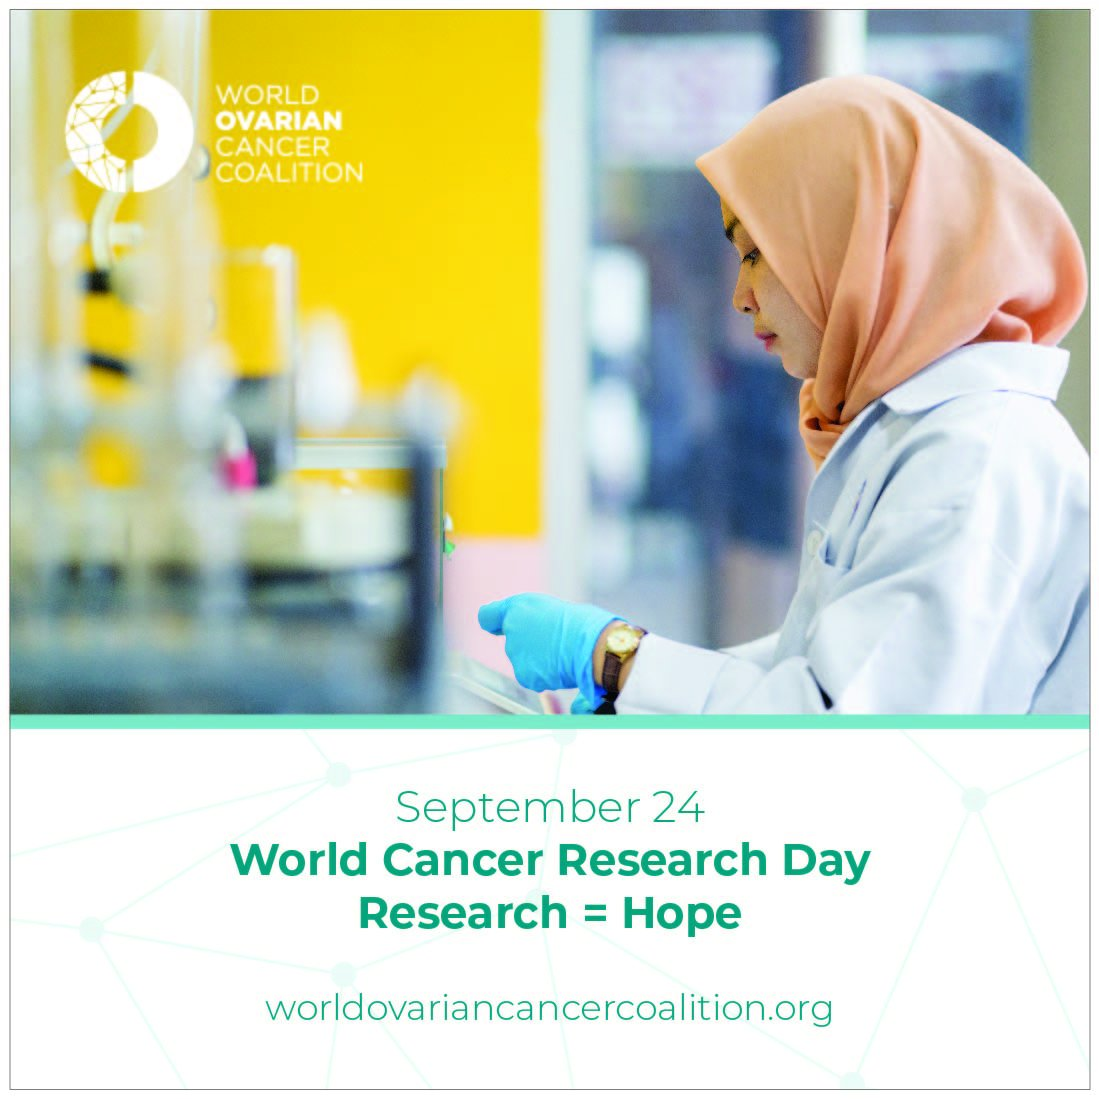 World Ovarian Cancer Coalition On Twitter Today Is World Cancer Research Day We Believe Research Will Make A Difference In The Lives Of Women Diagnosed With Ovarian Cancer Thank You To All